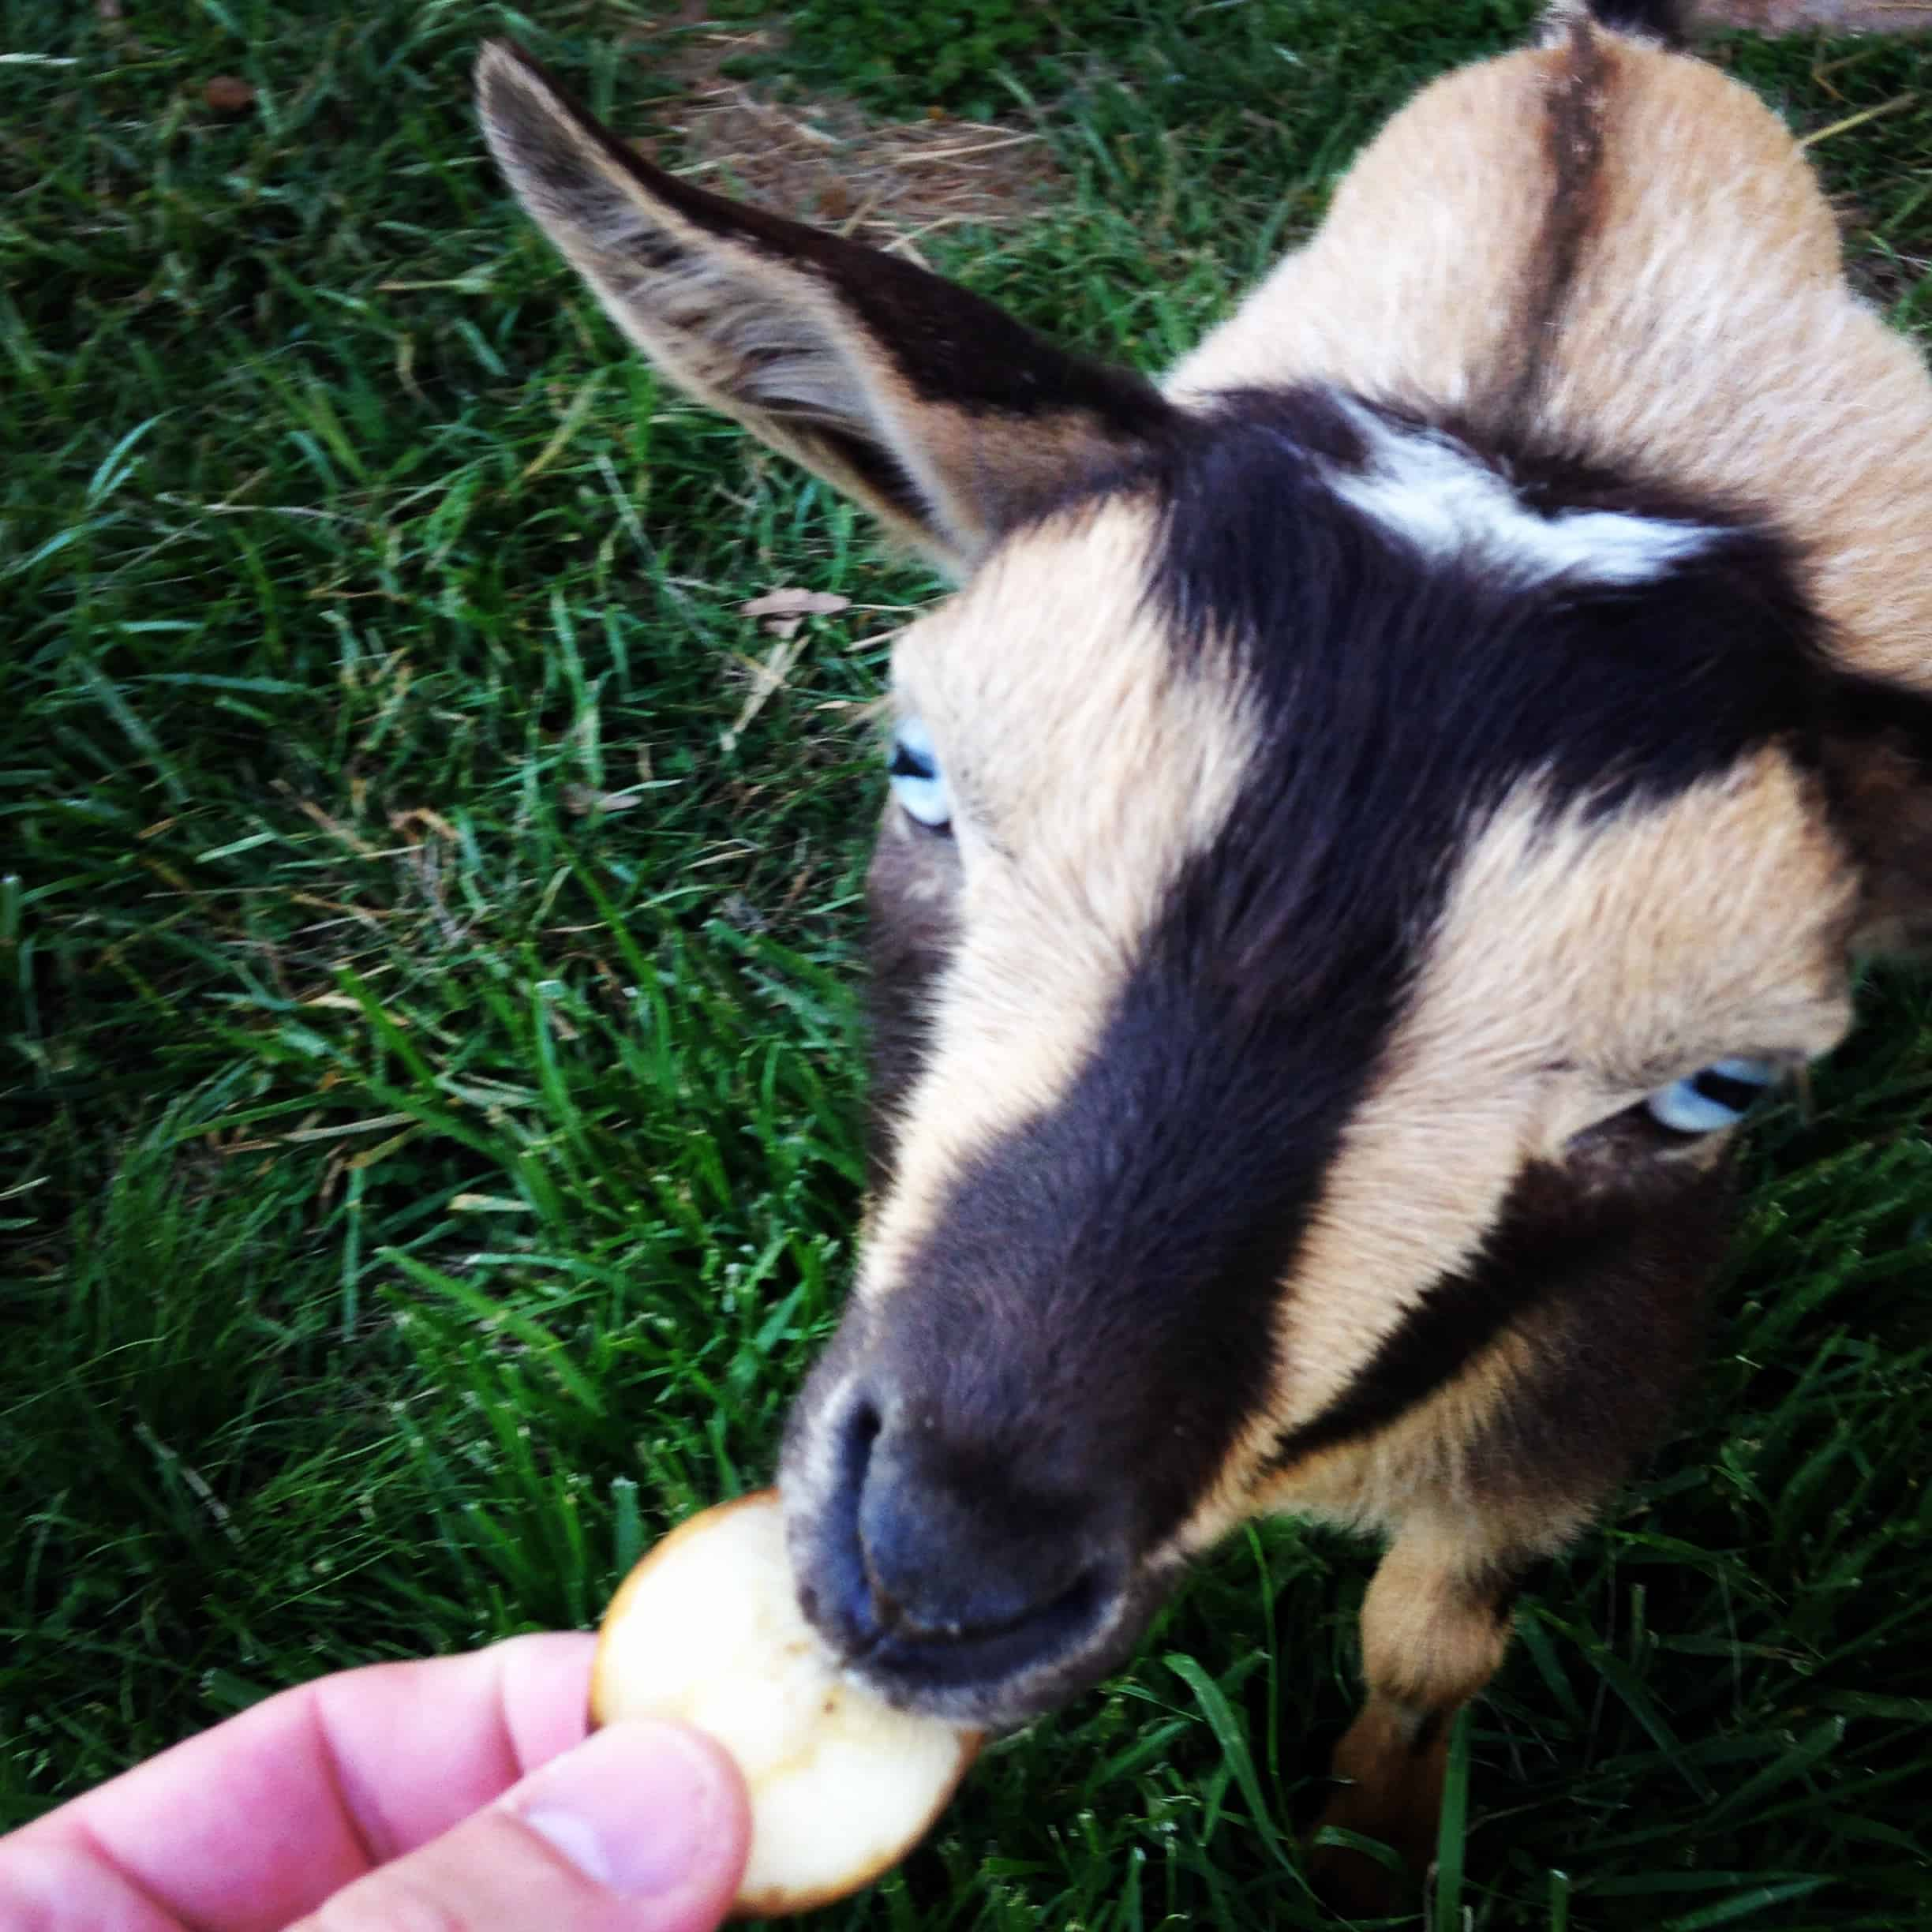 goat eating banana slice